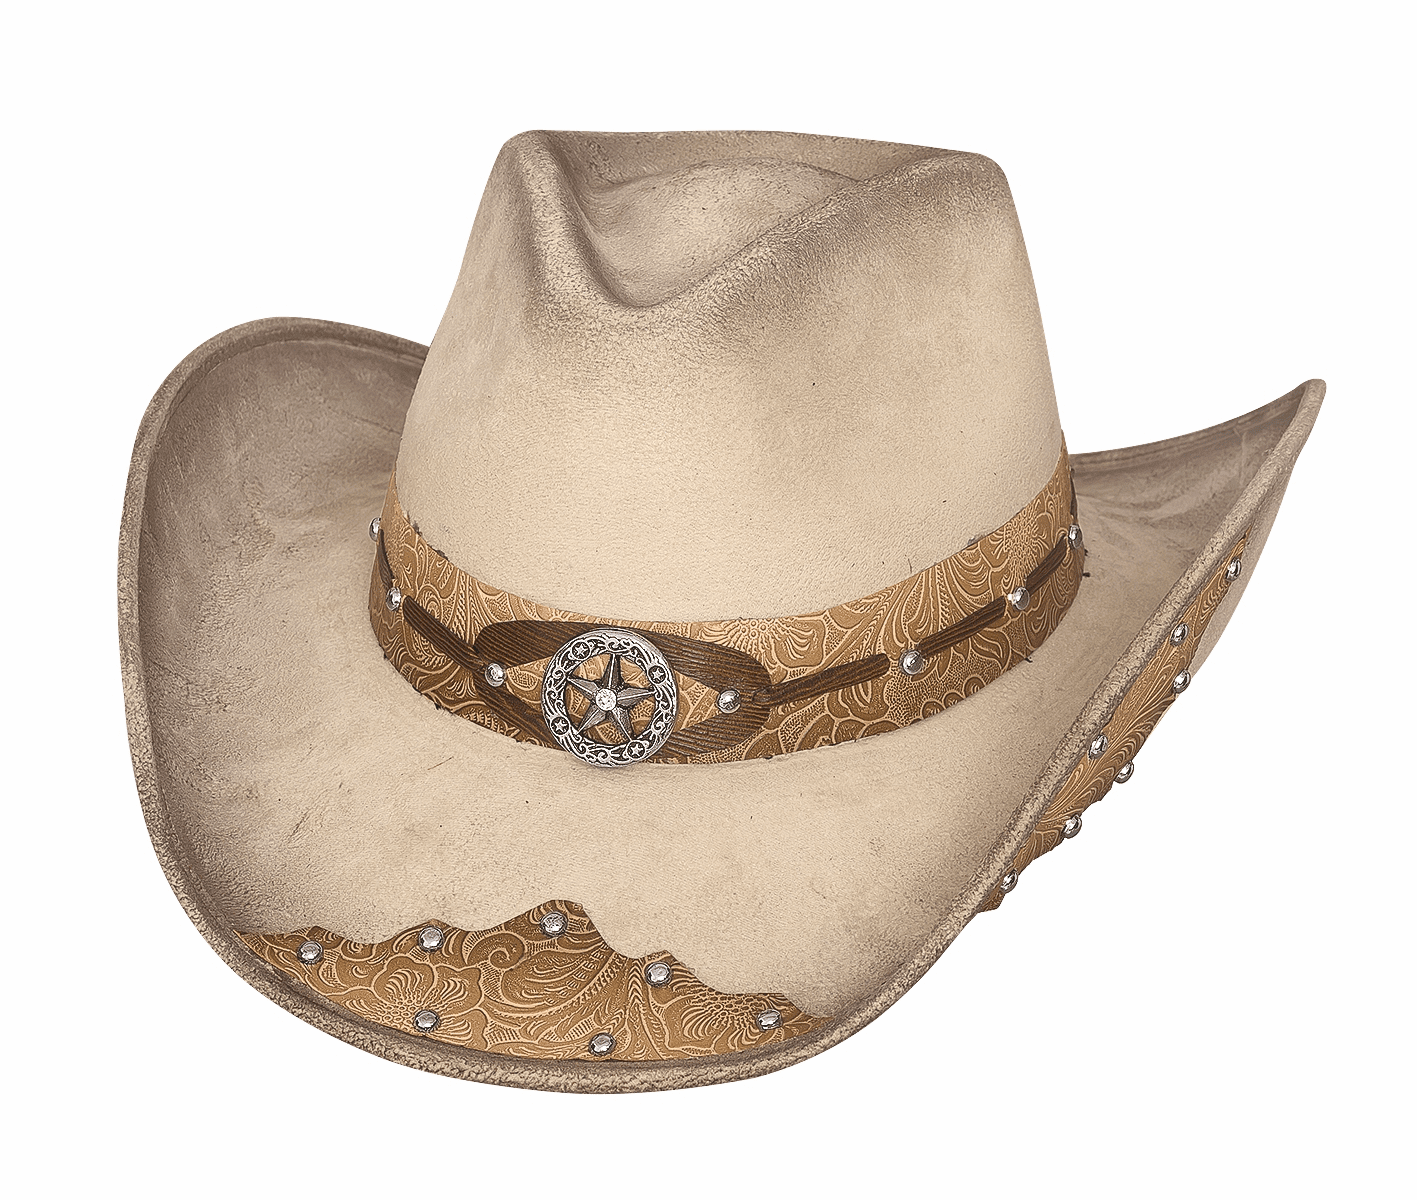 KICK THE DUST OFF Sassy Cowgirl Hat